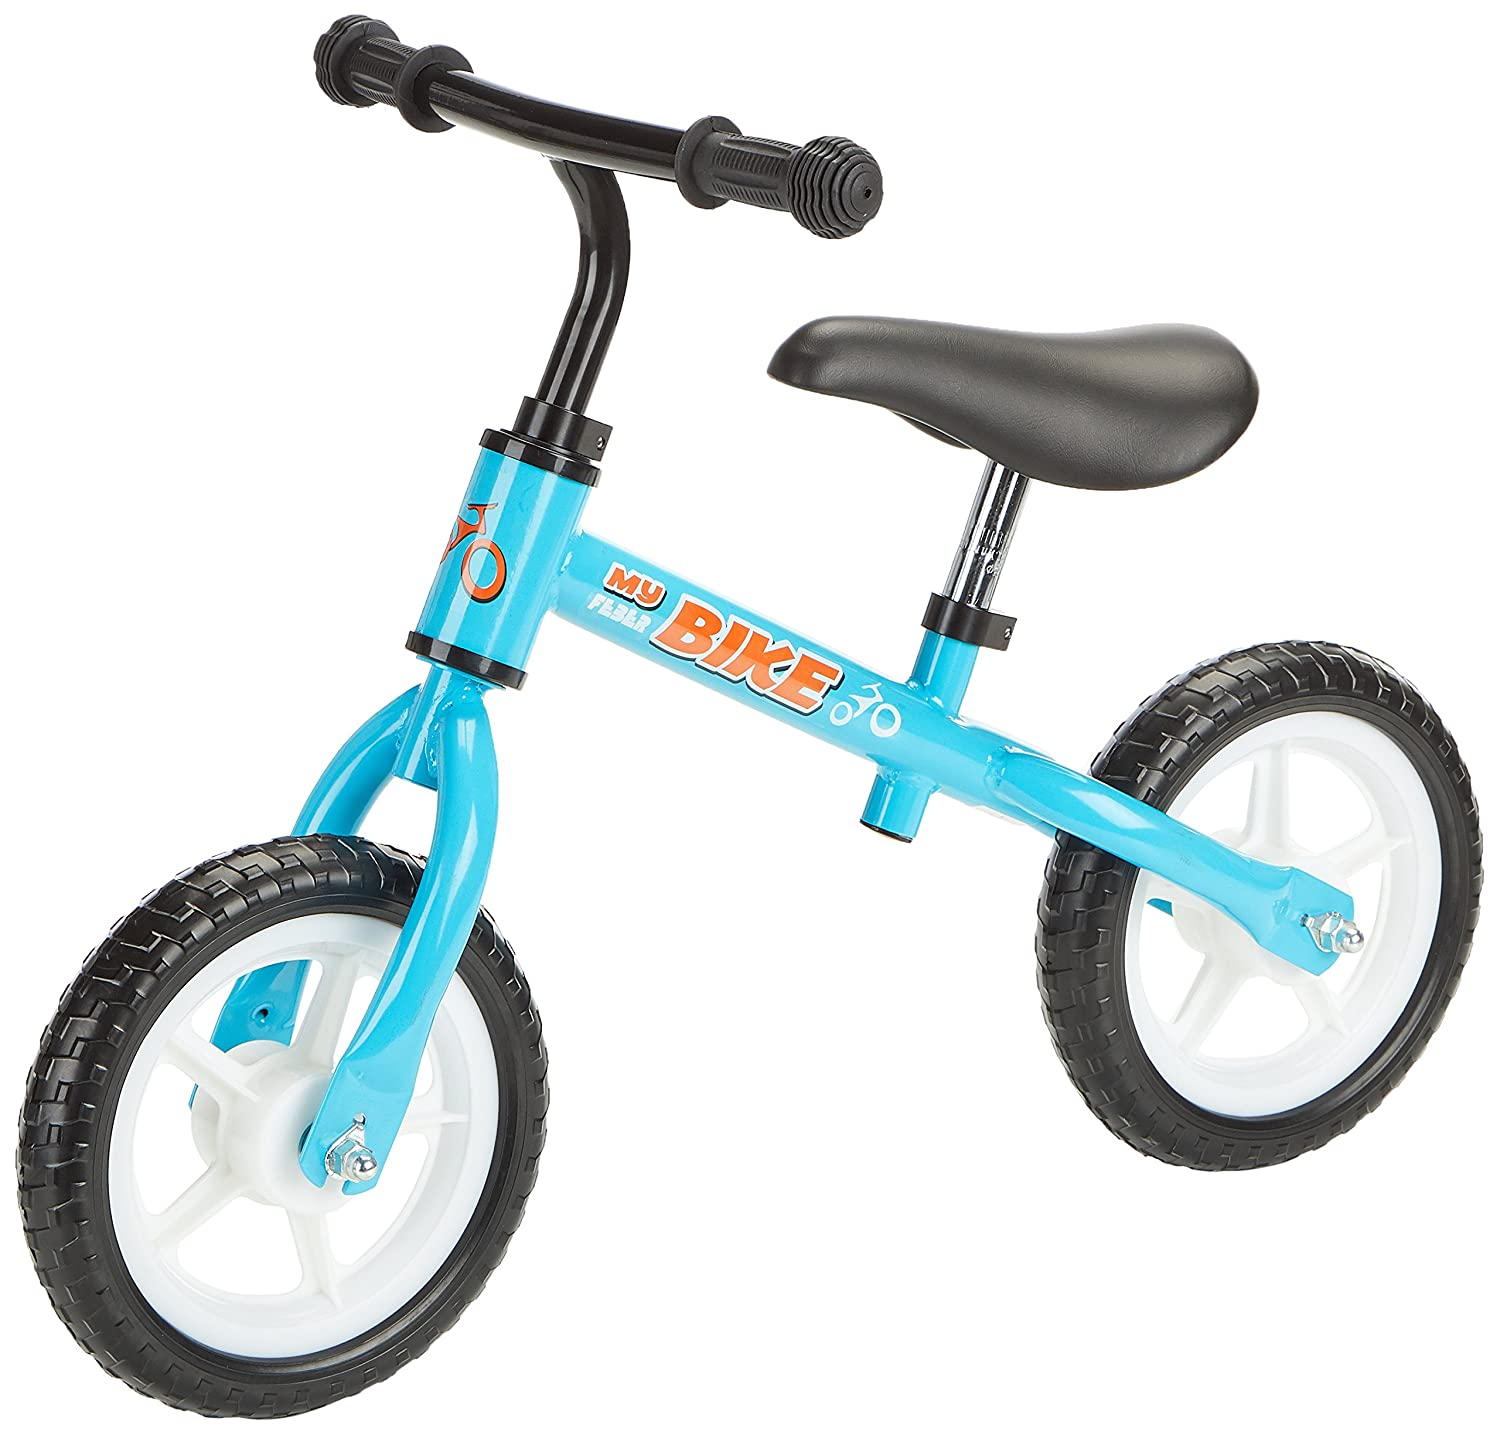 FEBER - My Bike Correpasillos, Color Azul (Famosa 800009008 ...